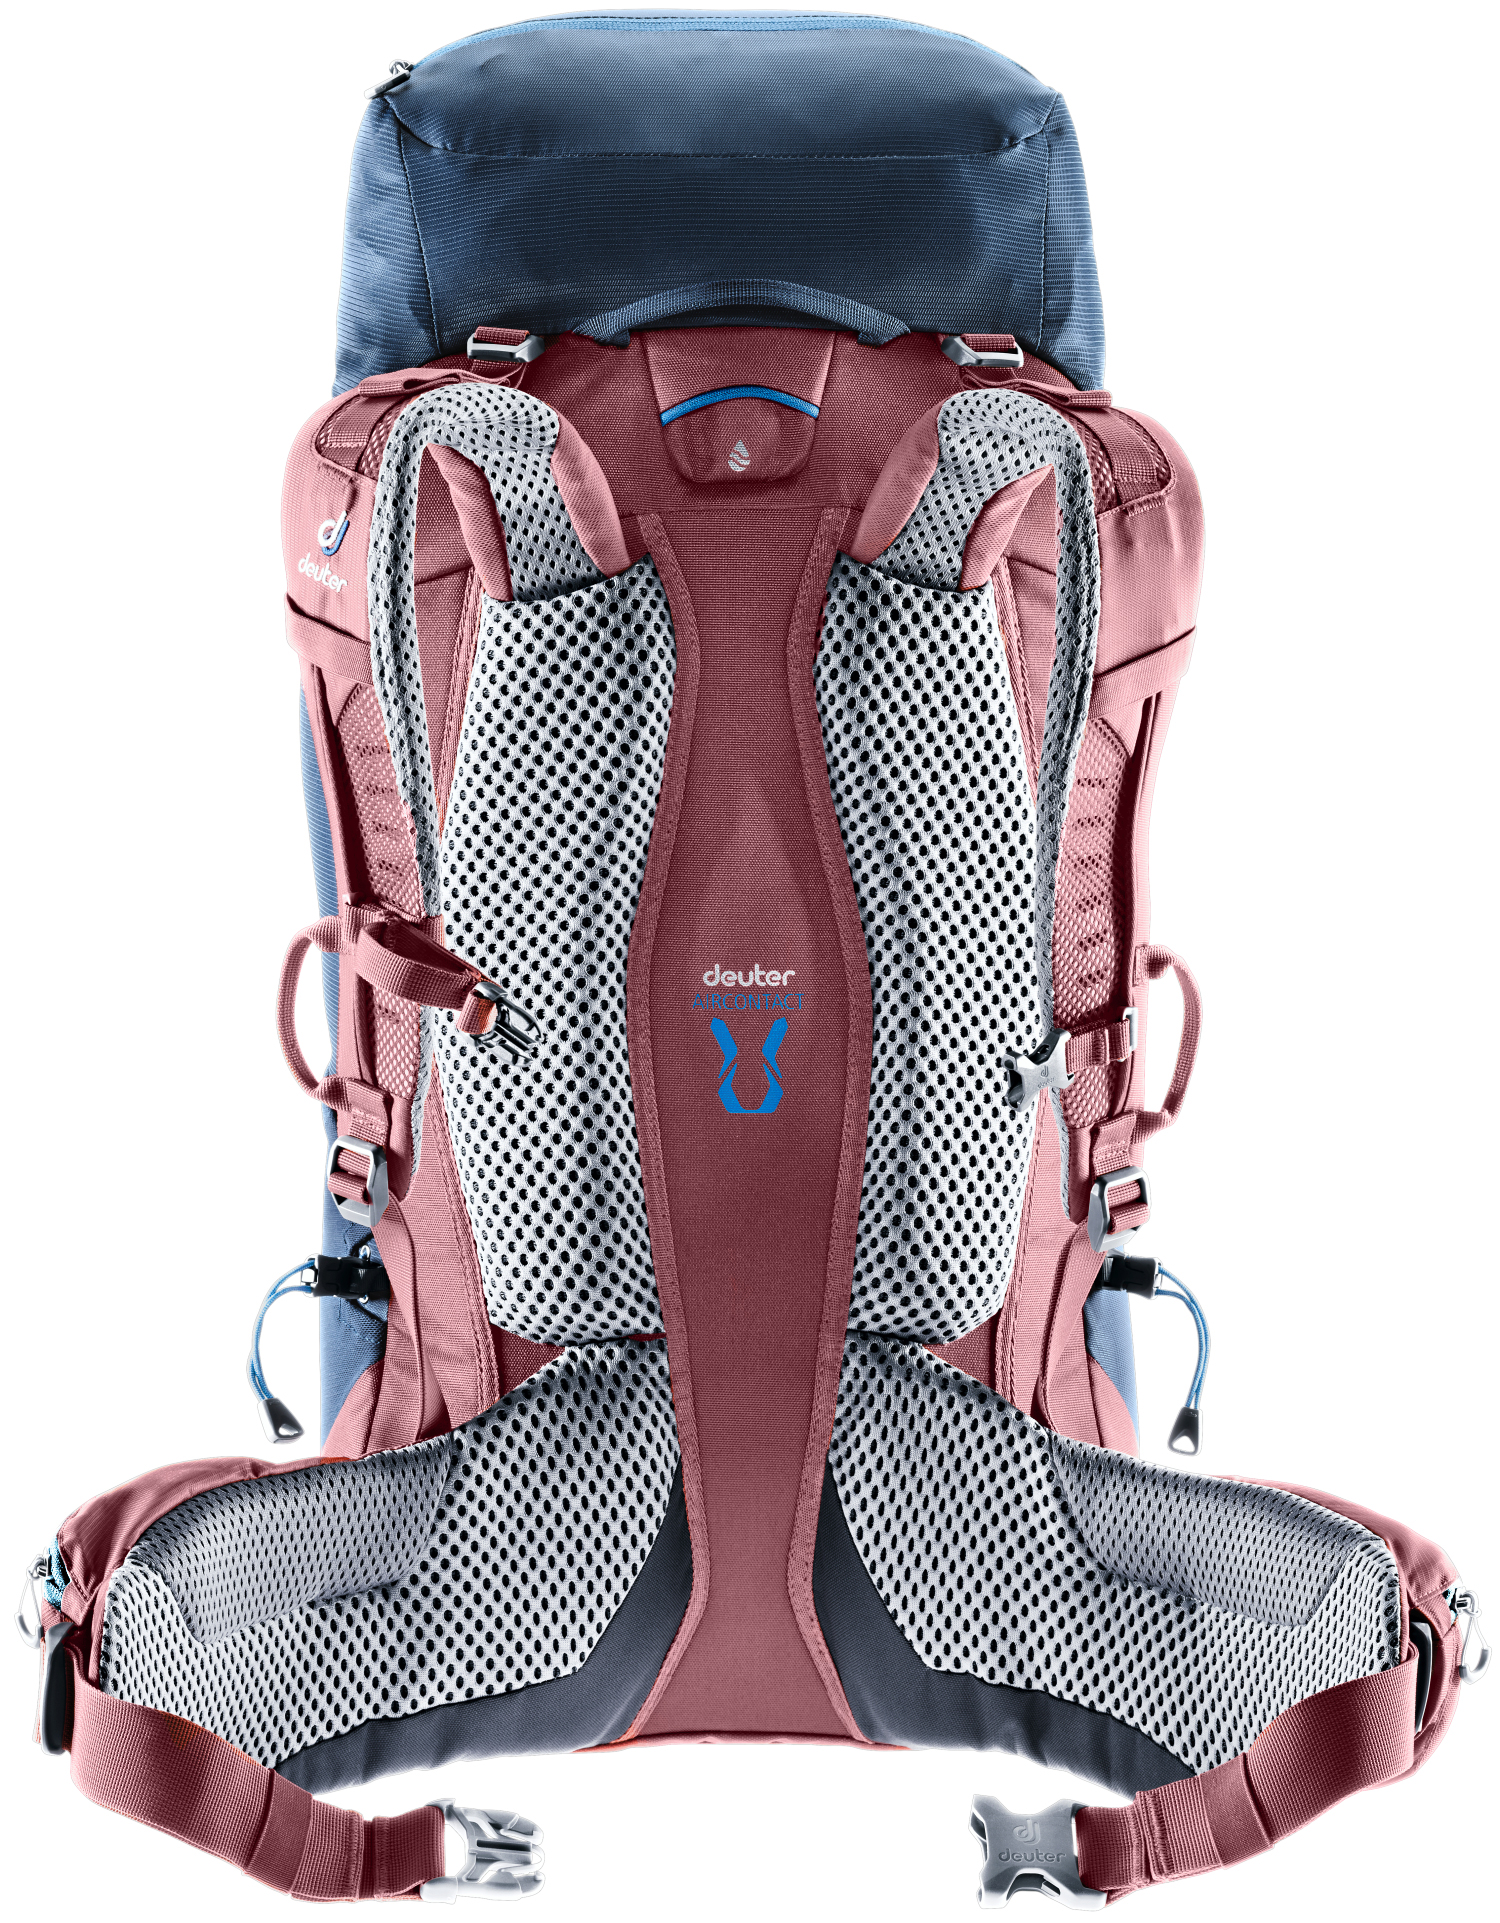 Aircontact Trail Pro backsystem